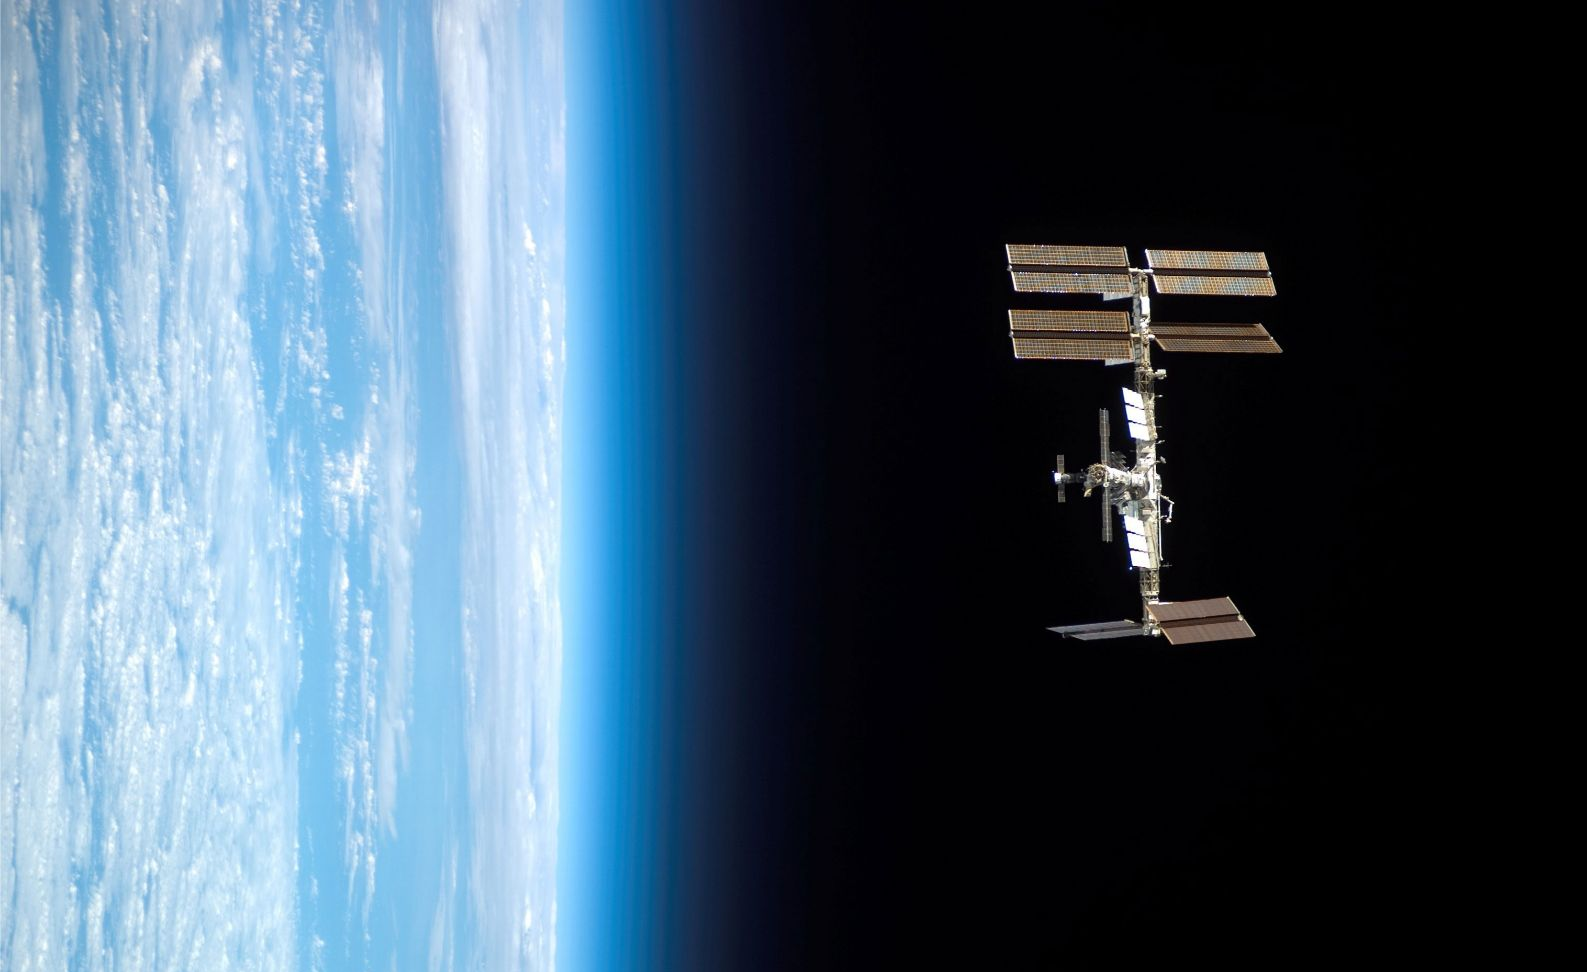 1588928190_international-space-station.png